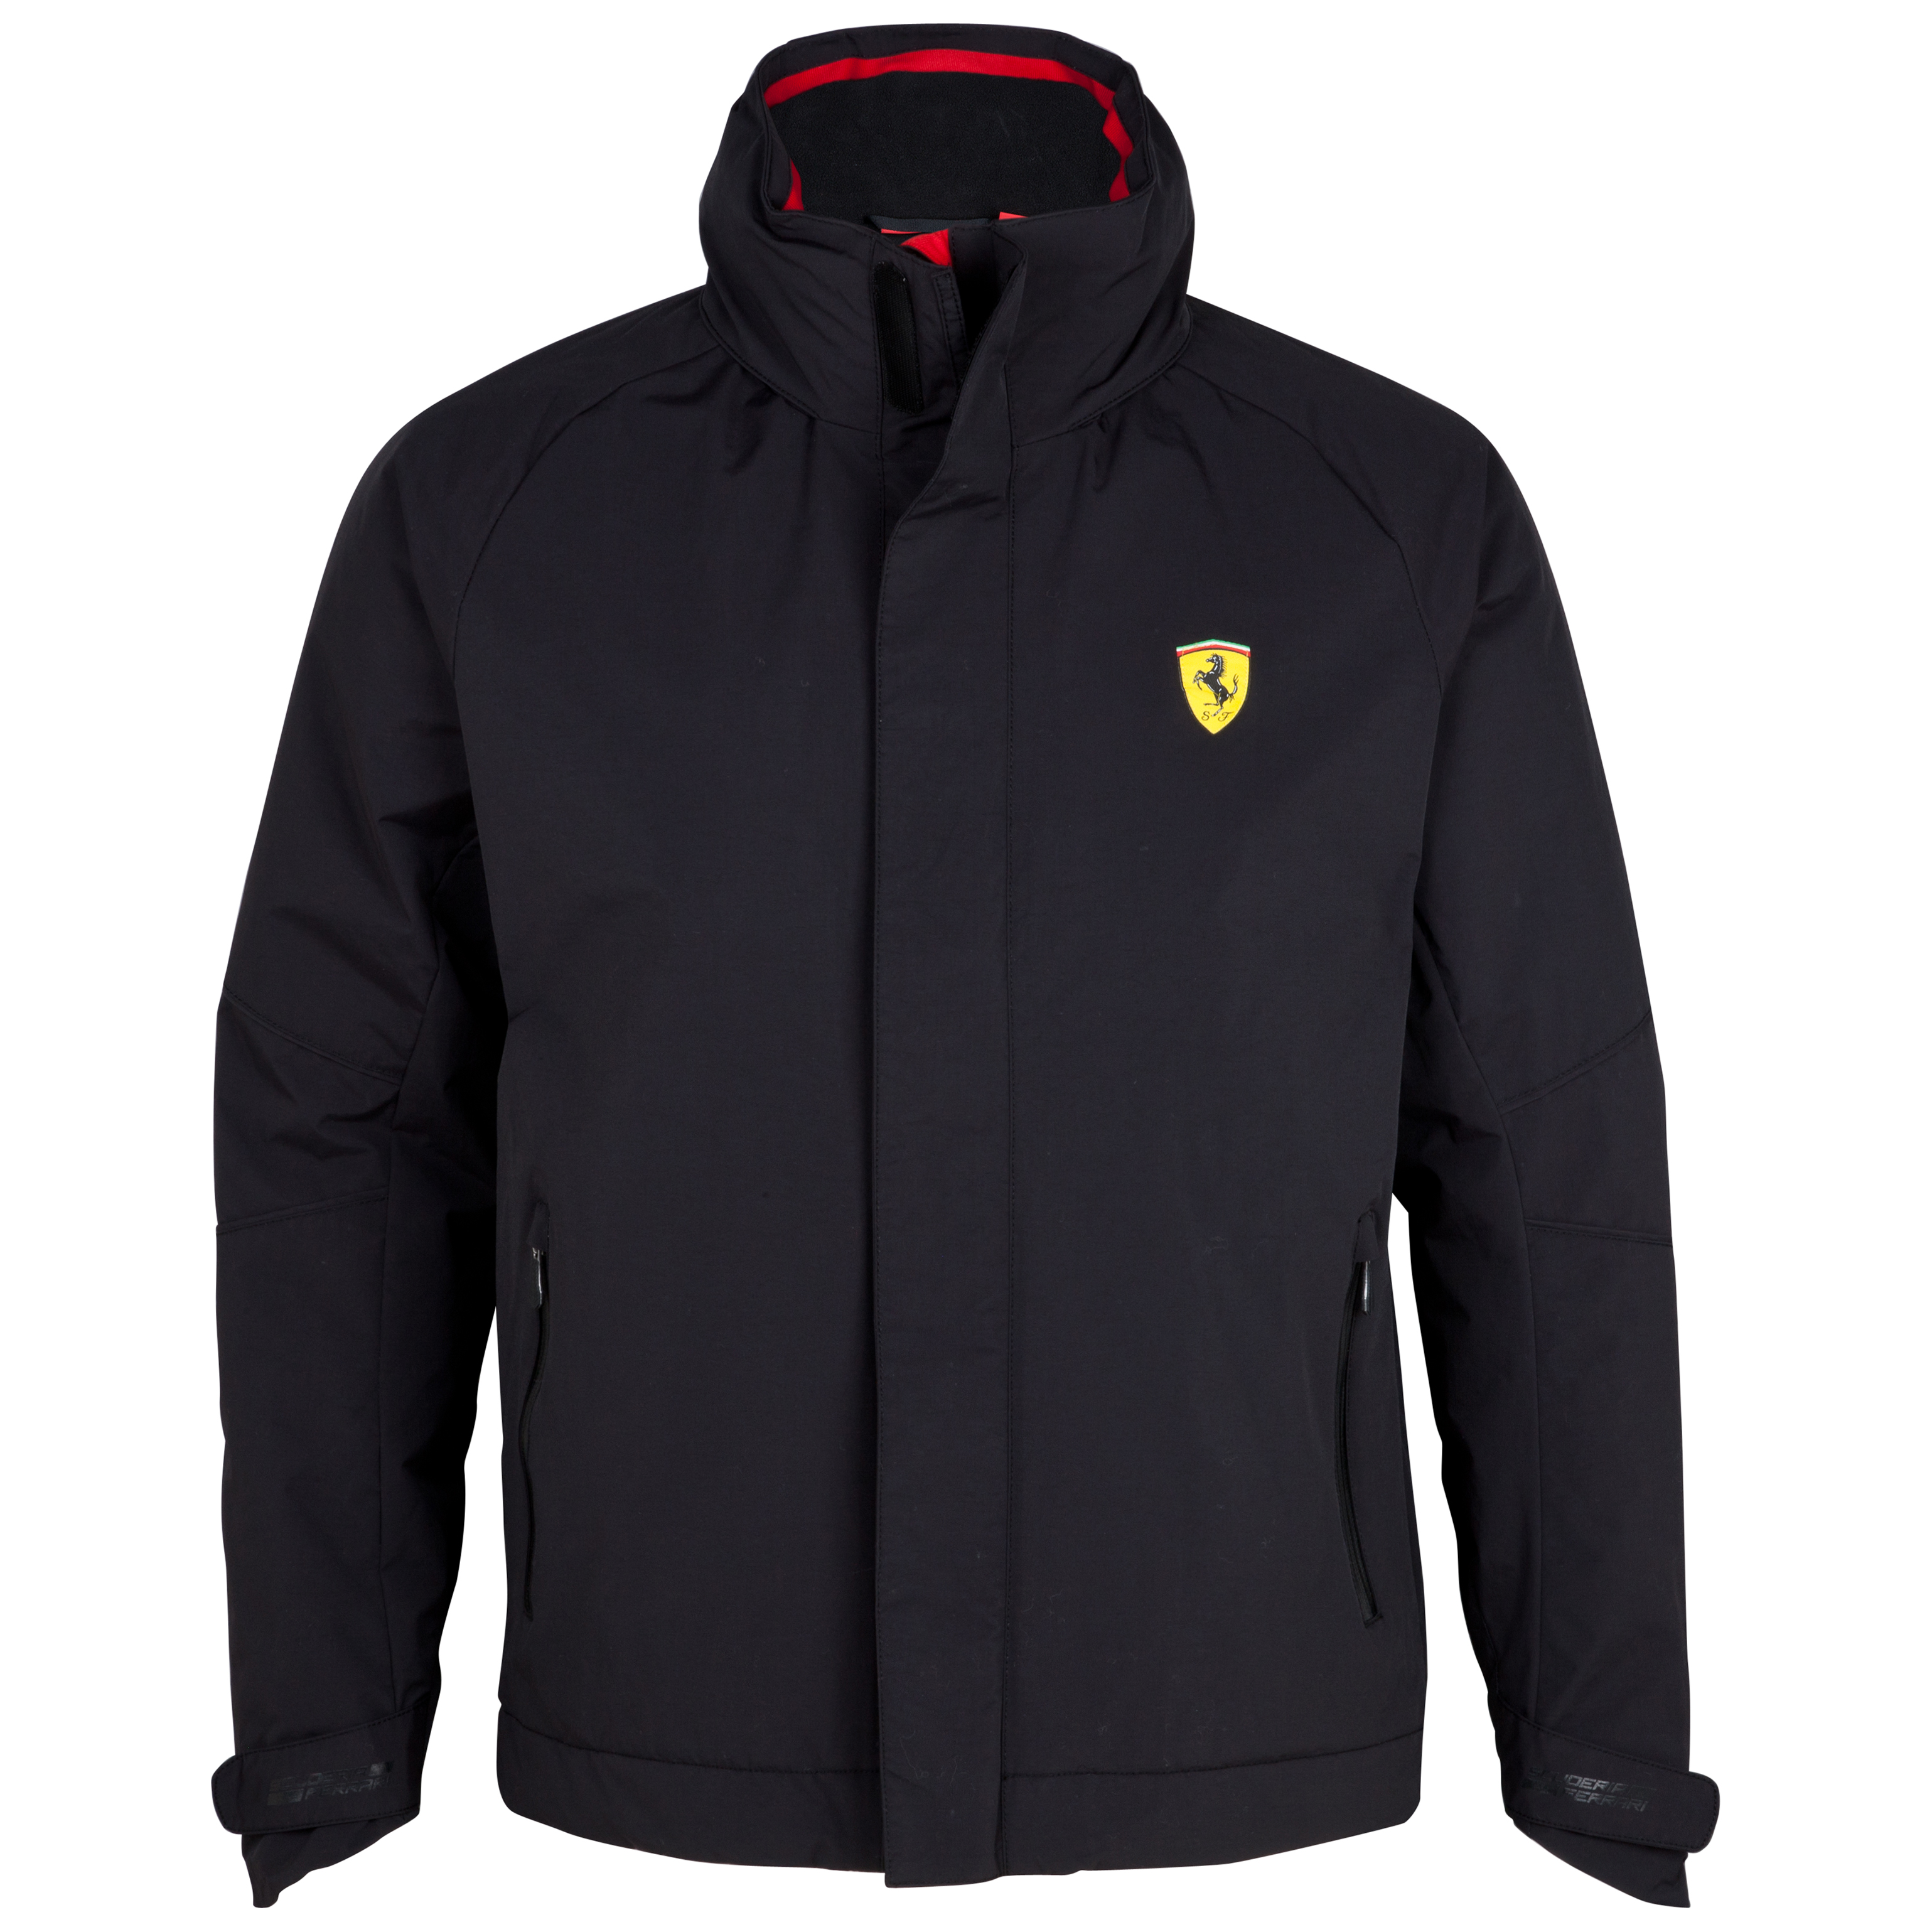 Scuderia Ferrari Paddock Jacket - Black